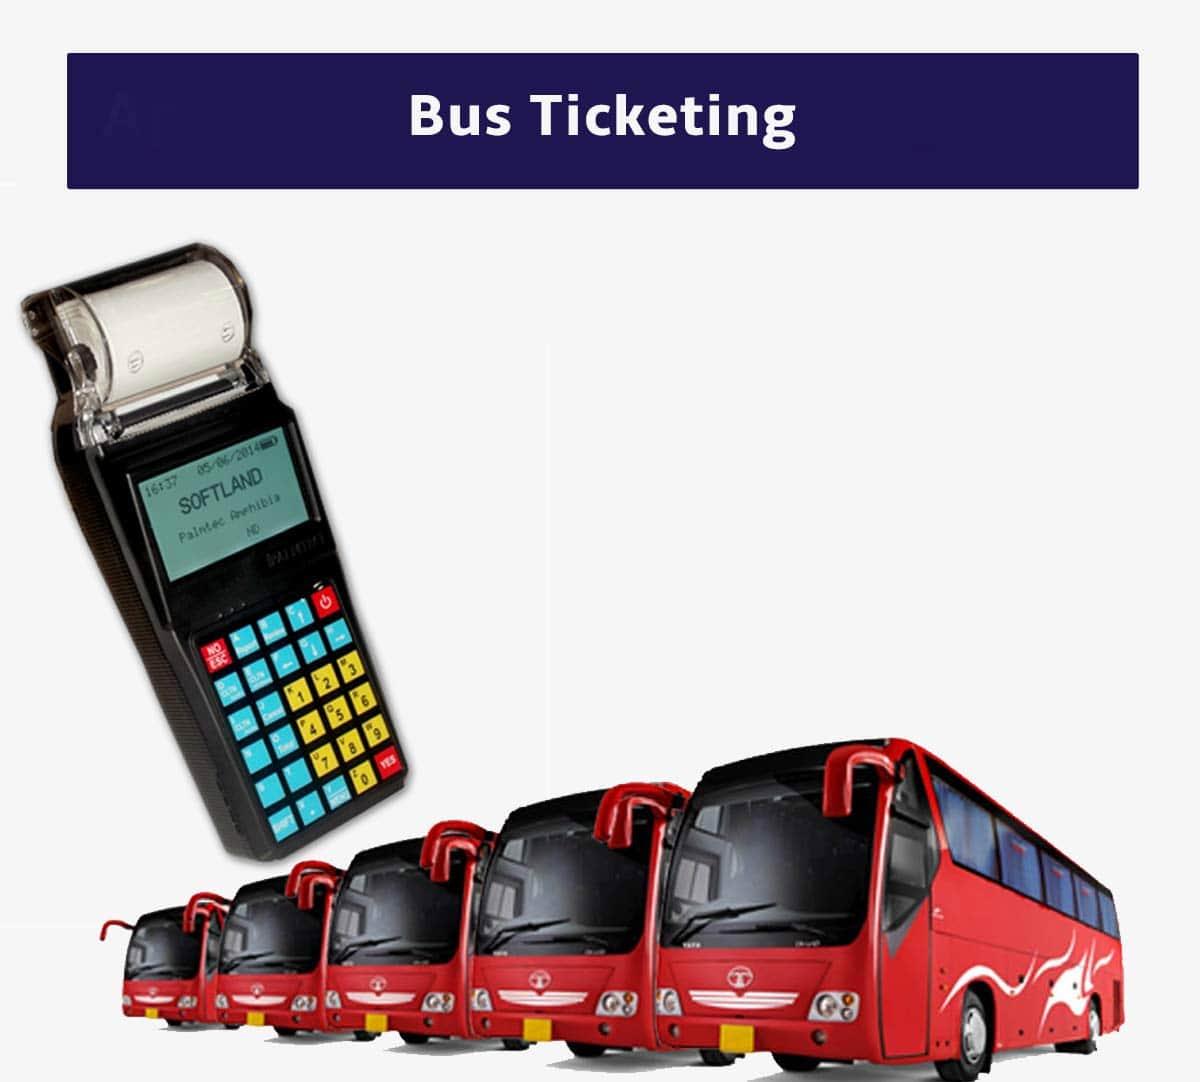 bus-ticket-content